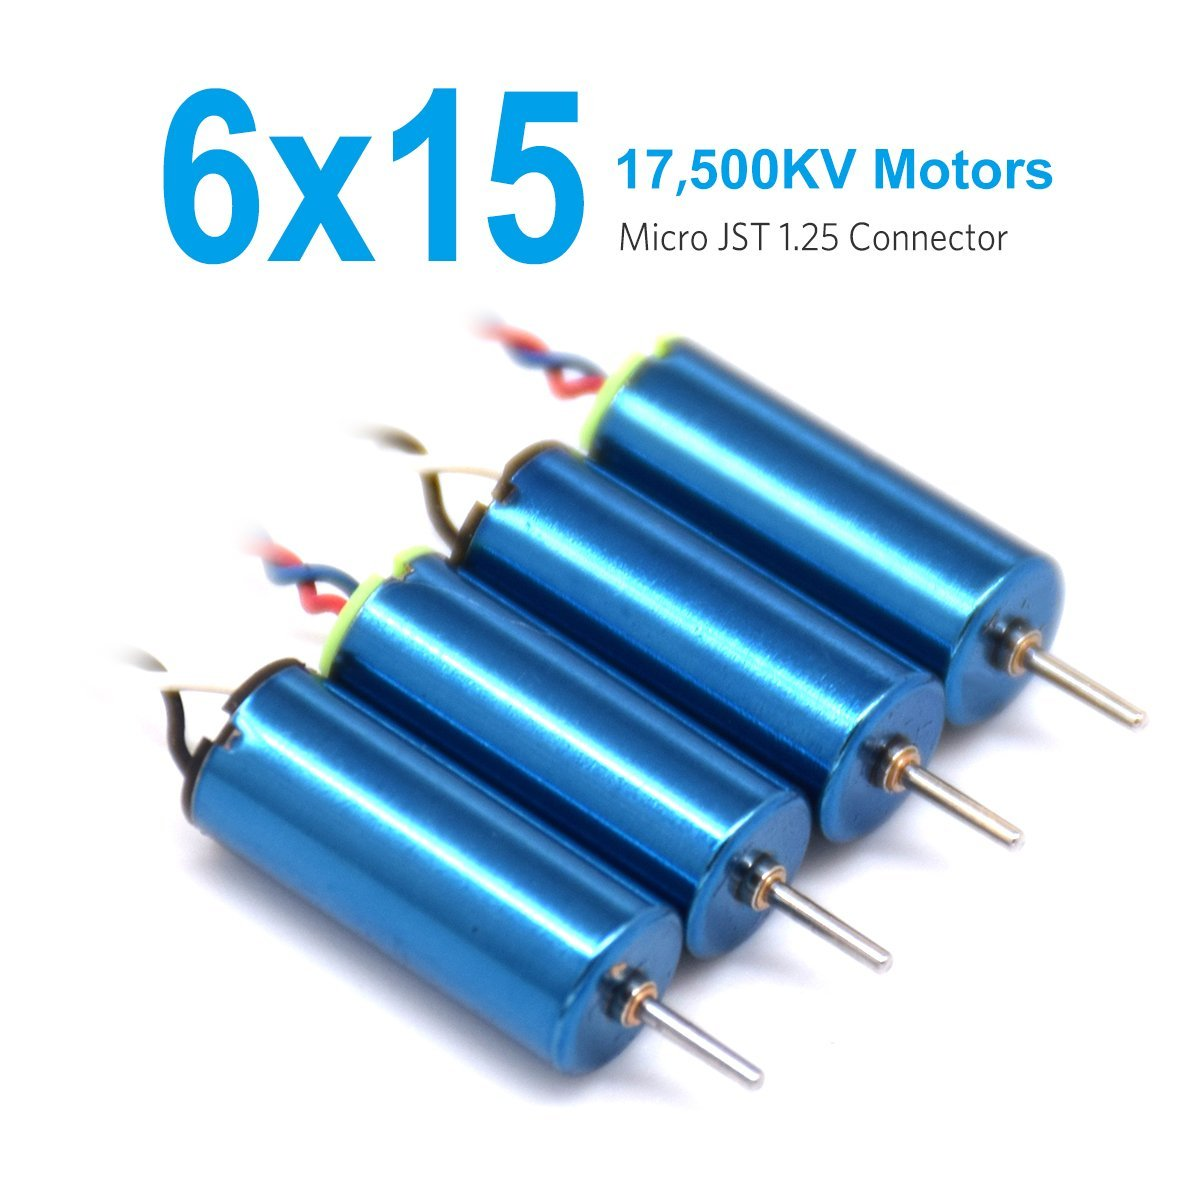 BETAFPV 4pcs of 6x15mm Motor (Speed: Faster) 17500KV TW Sauce Edition Blue with Micro JST 1.25 Plug touchstone teacher s edition 4 with audio cd